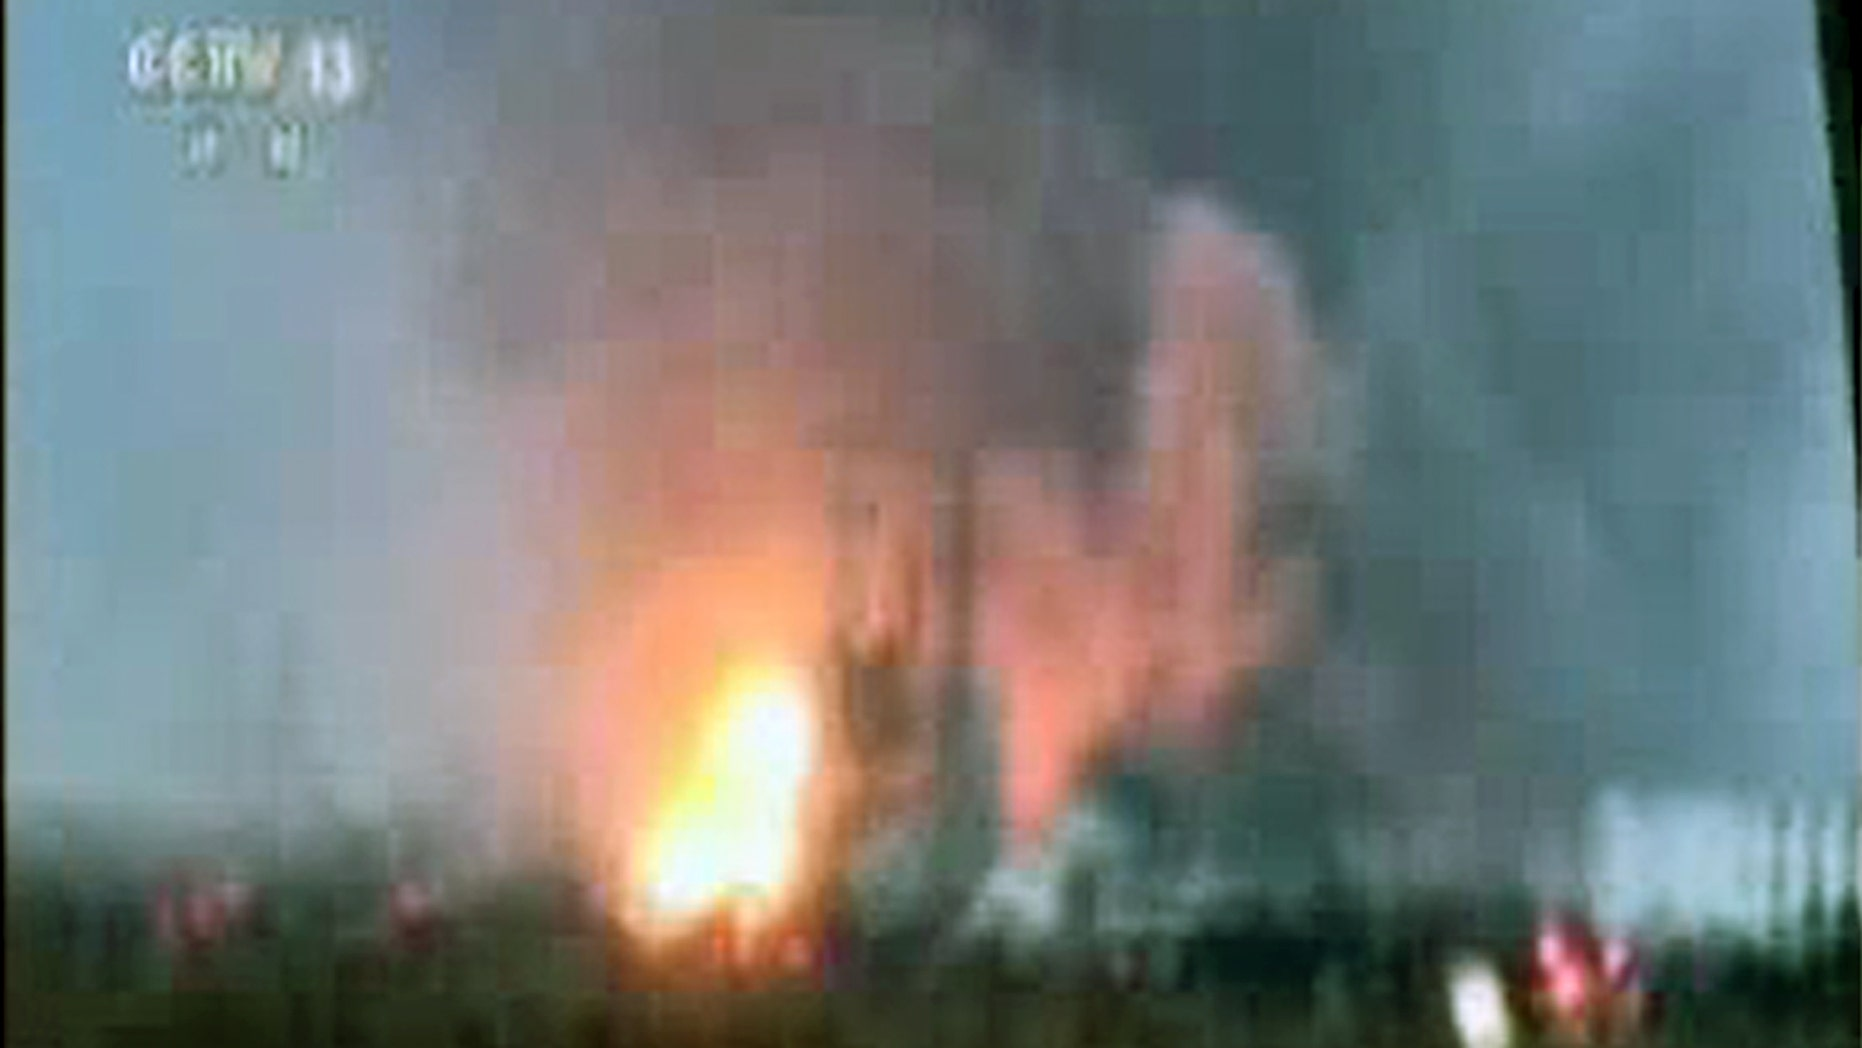 This image shows a fire at a chemical plant in Yancheng, China